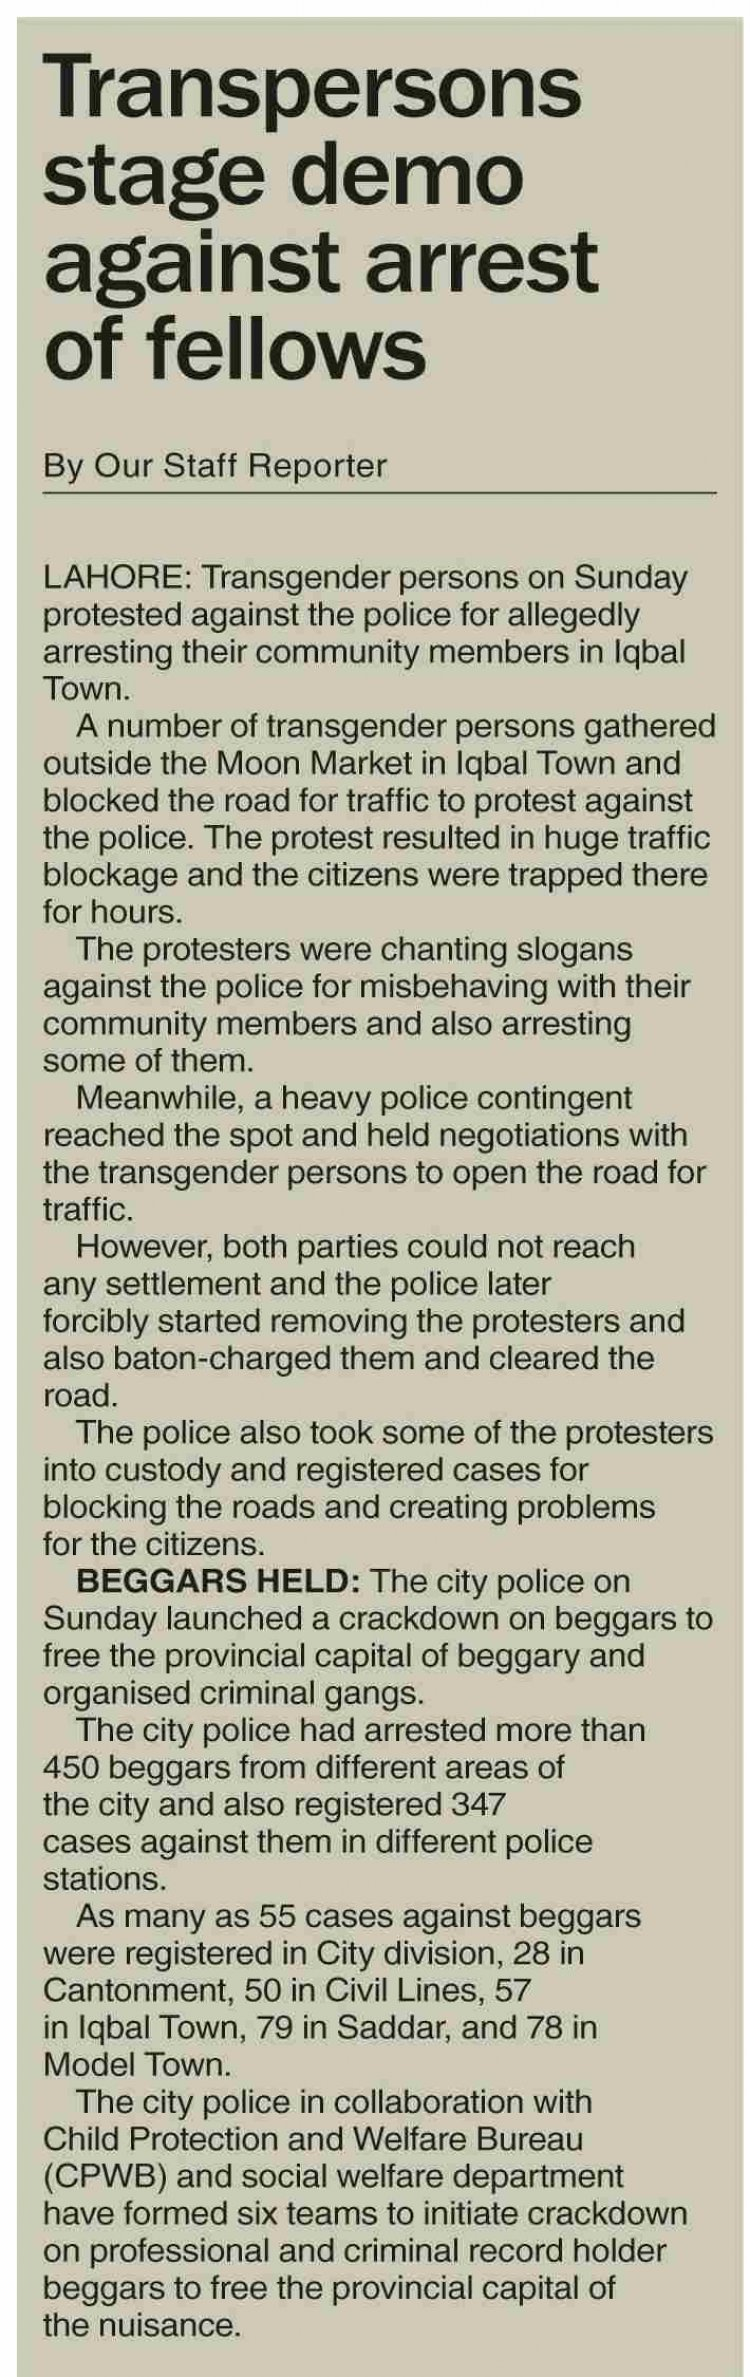 Transgender persons protest against police arrests of Fellow in Pakistan.